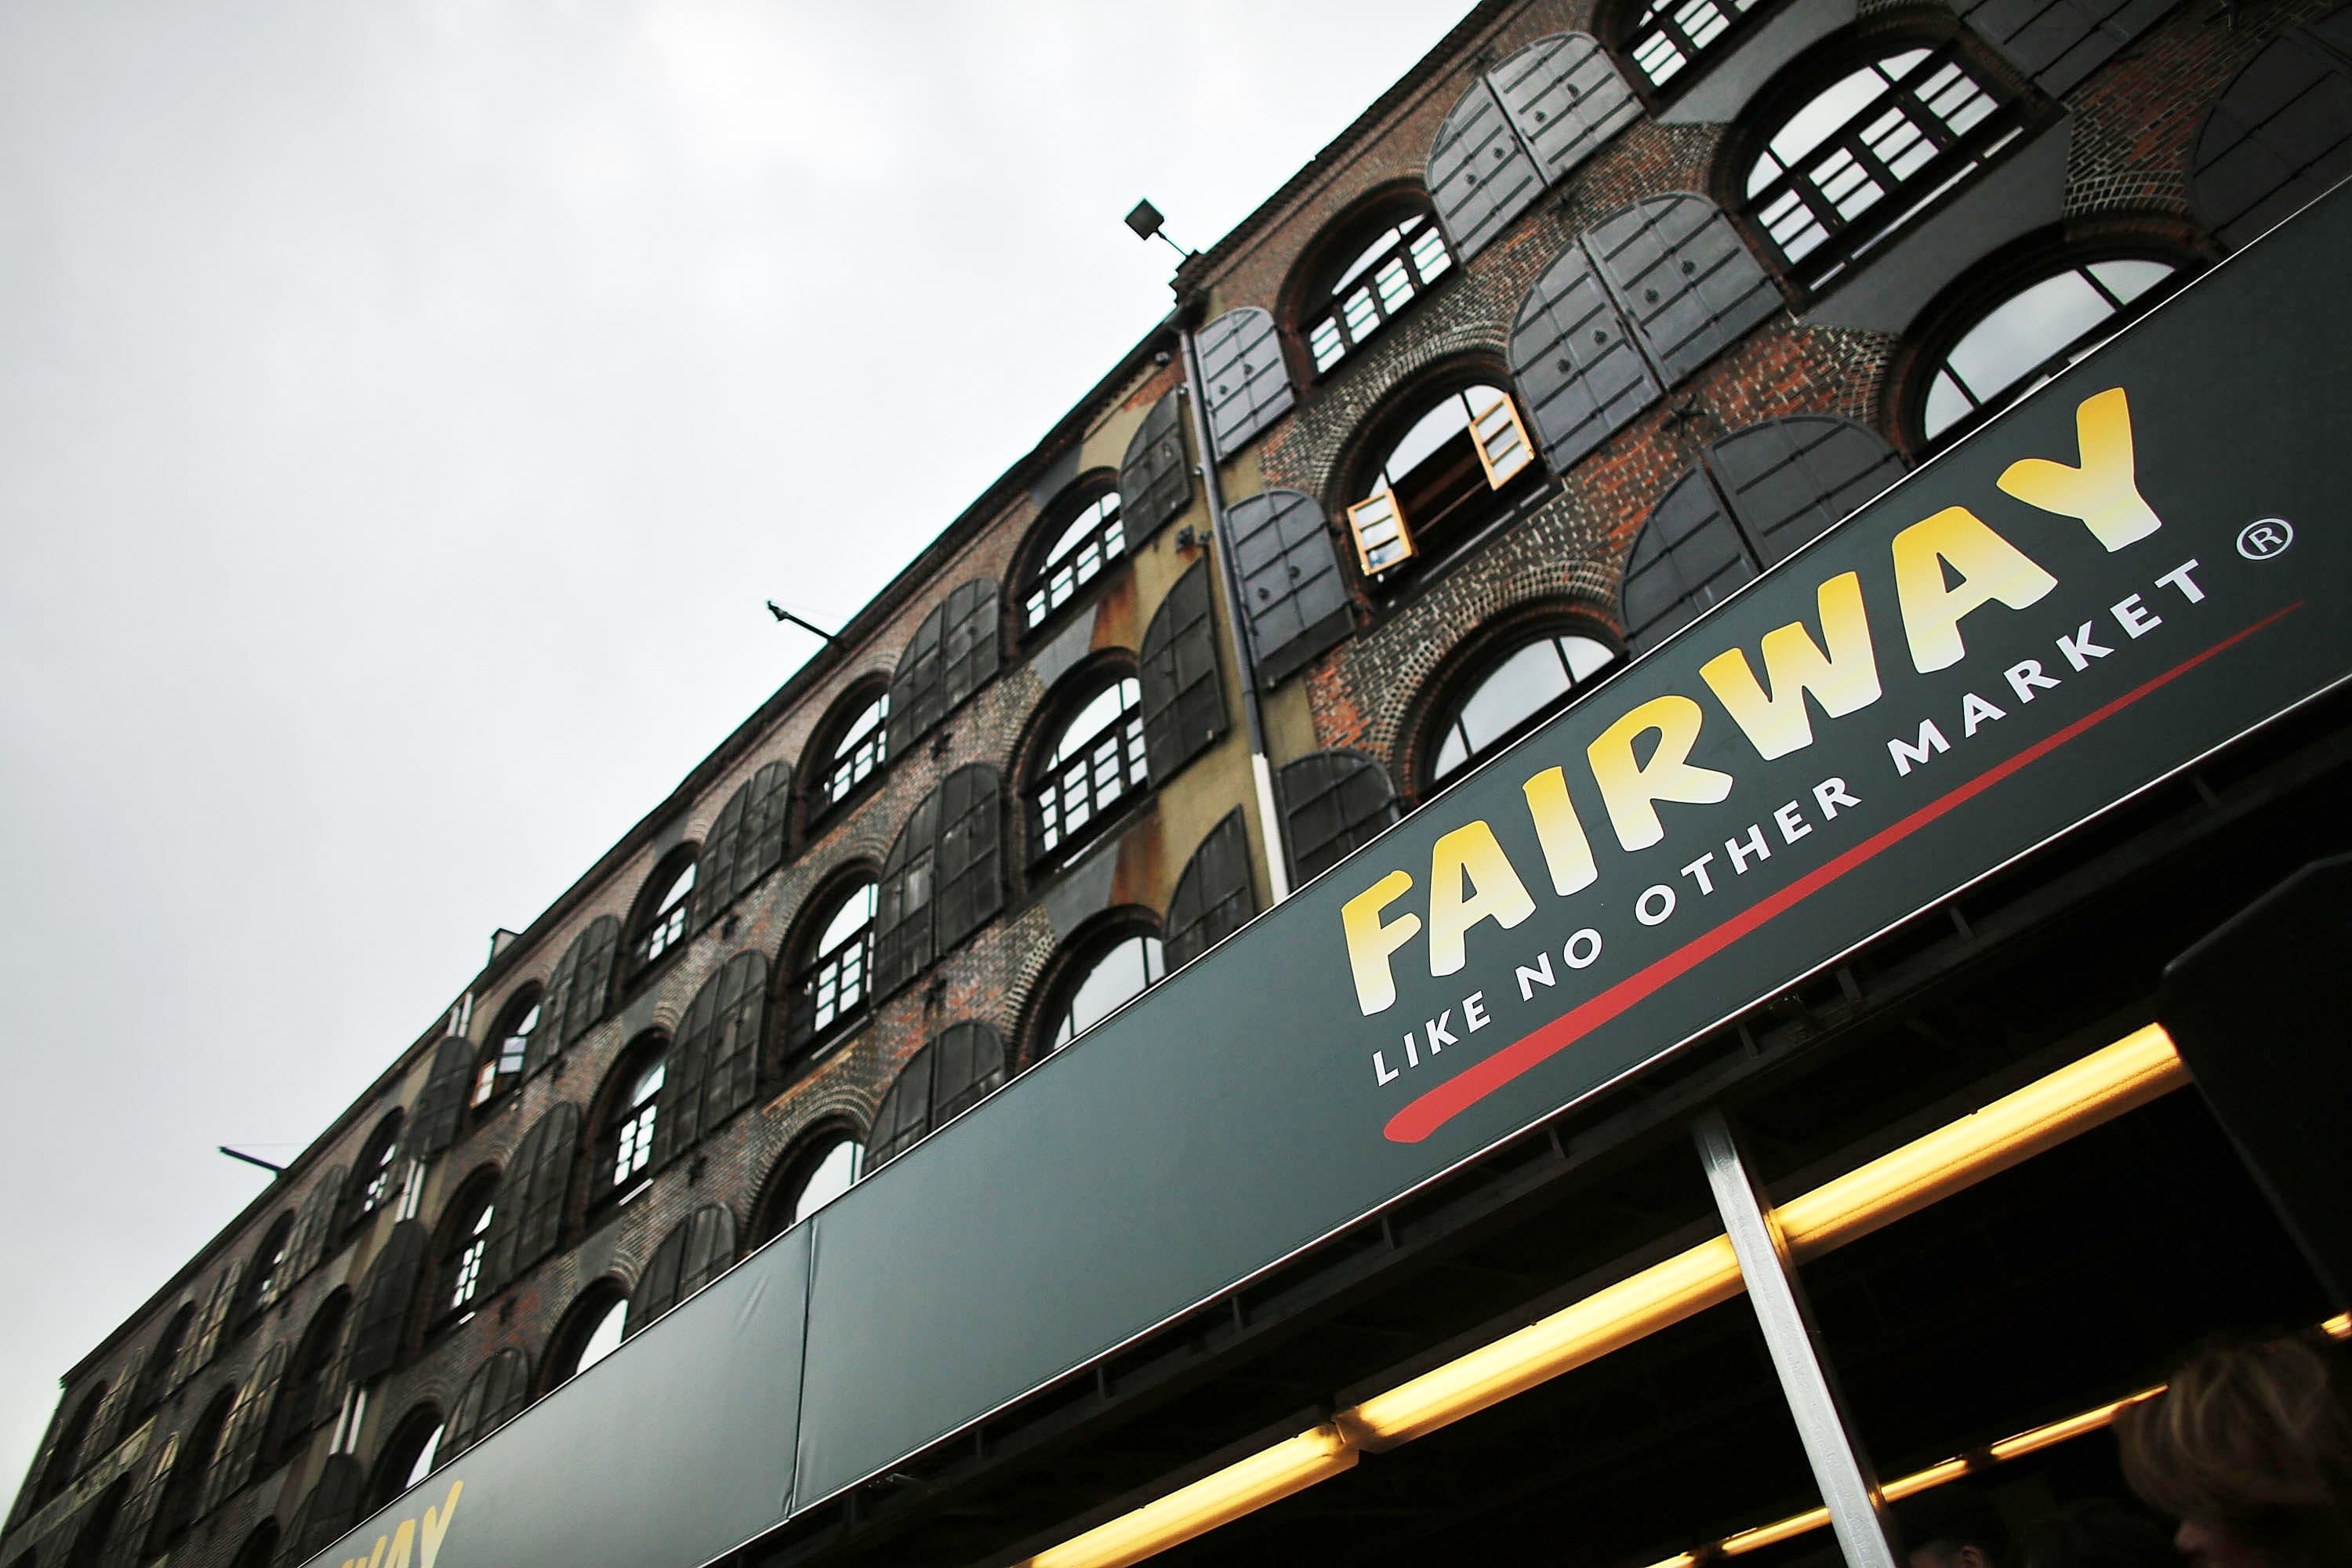 NY grocer Fairway files for bankruptcy protection, will close some stores